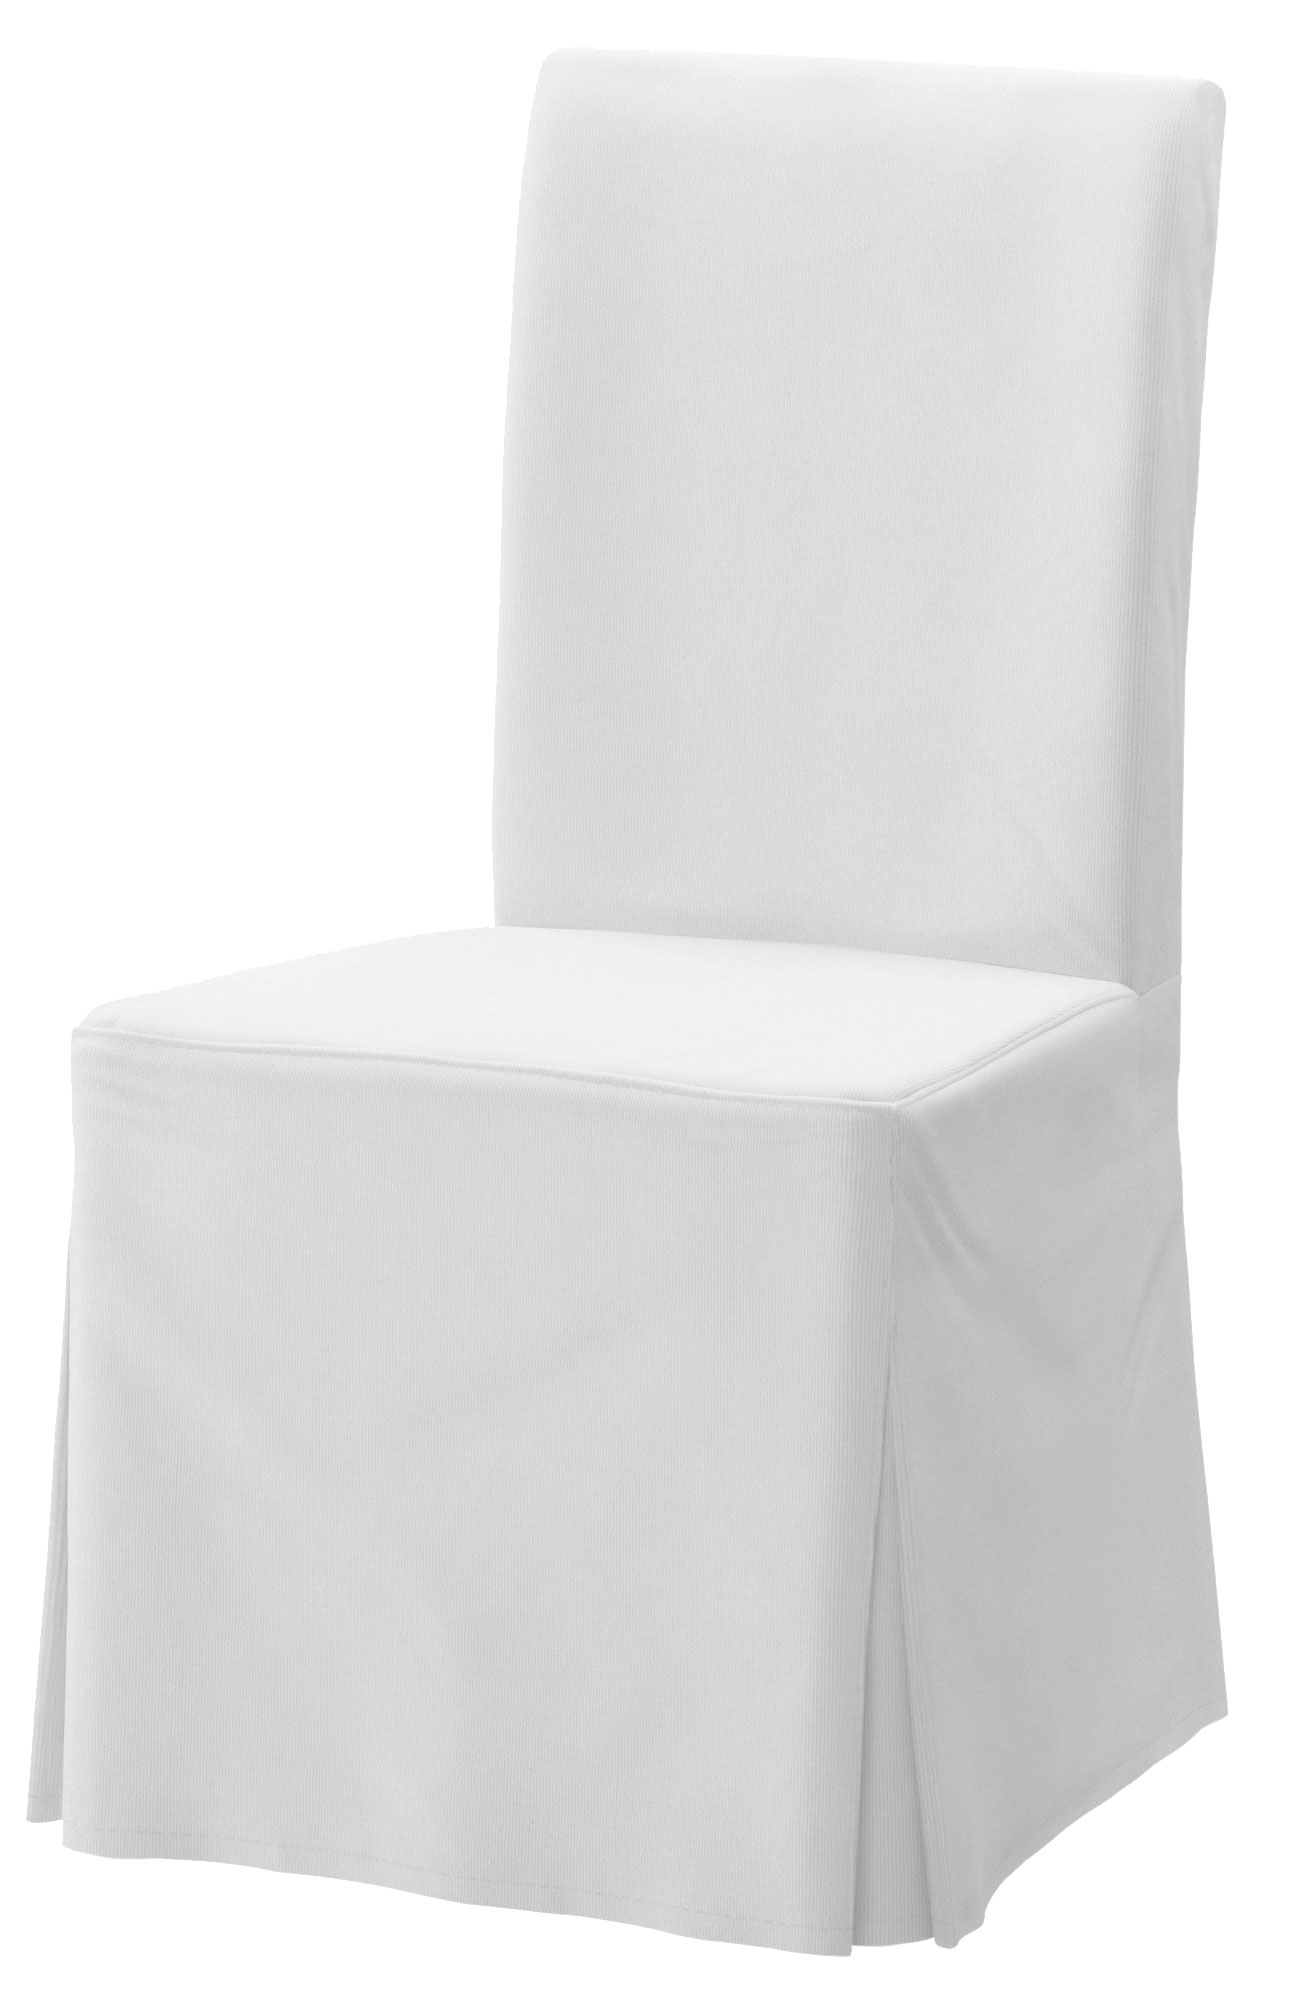 chair cover hire and fitting outdoor rocking chairs plans covers tablecloths napkins for weddings or